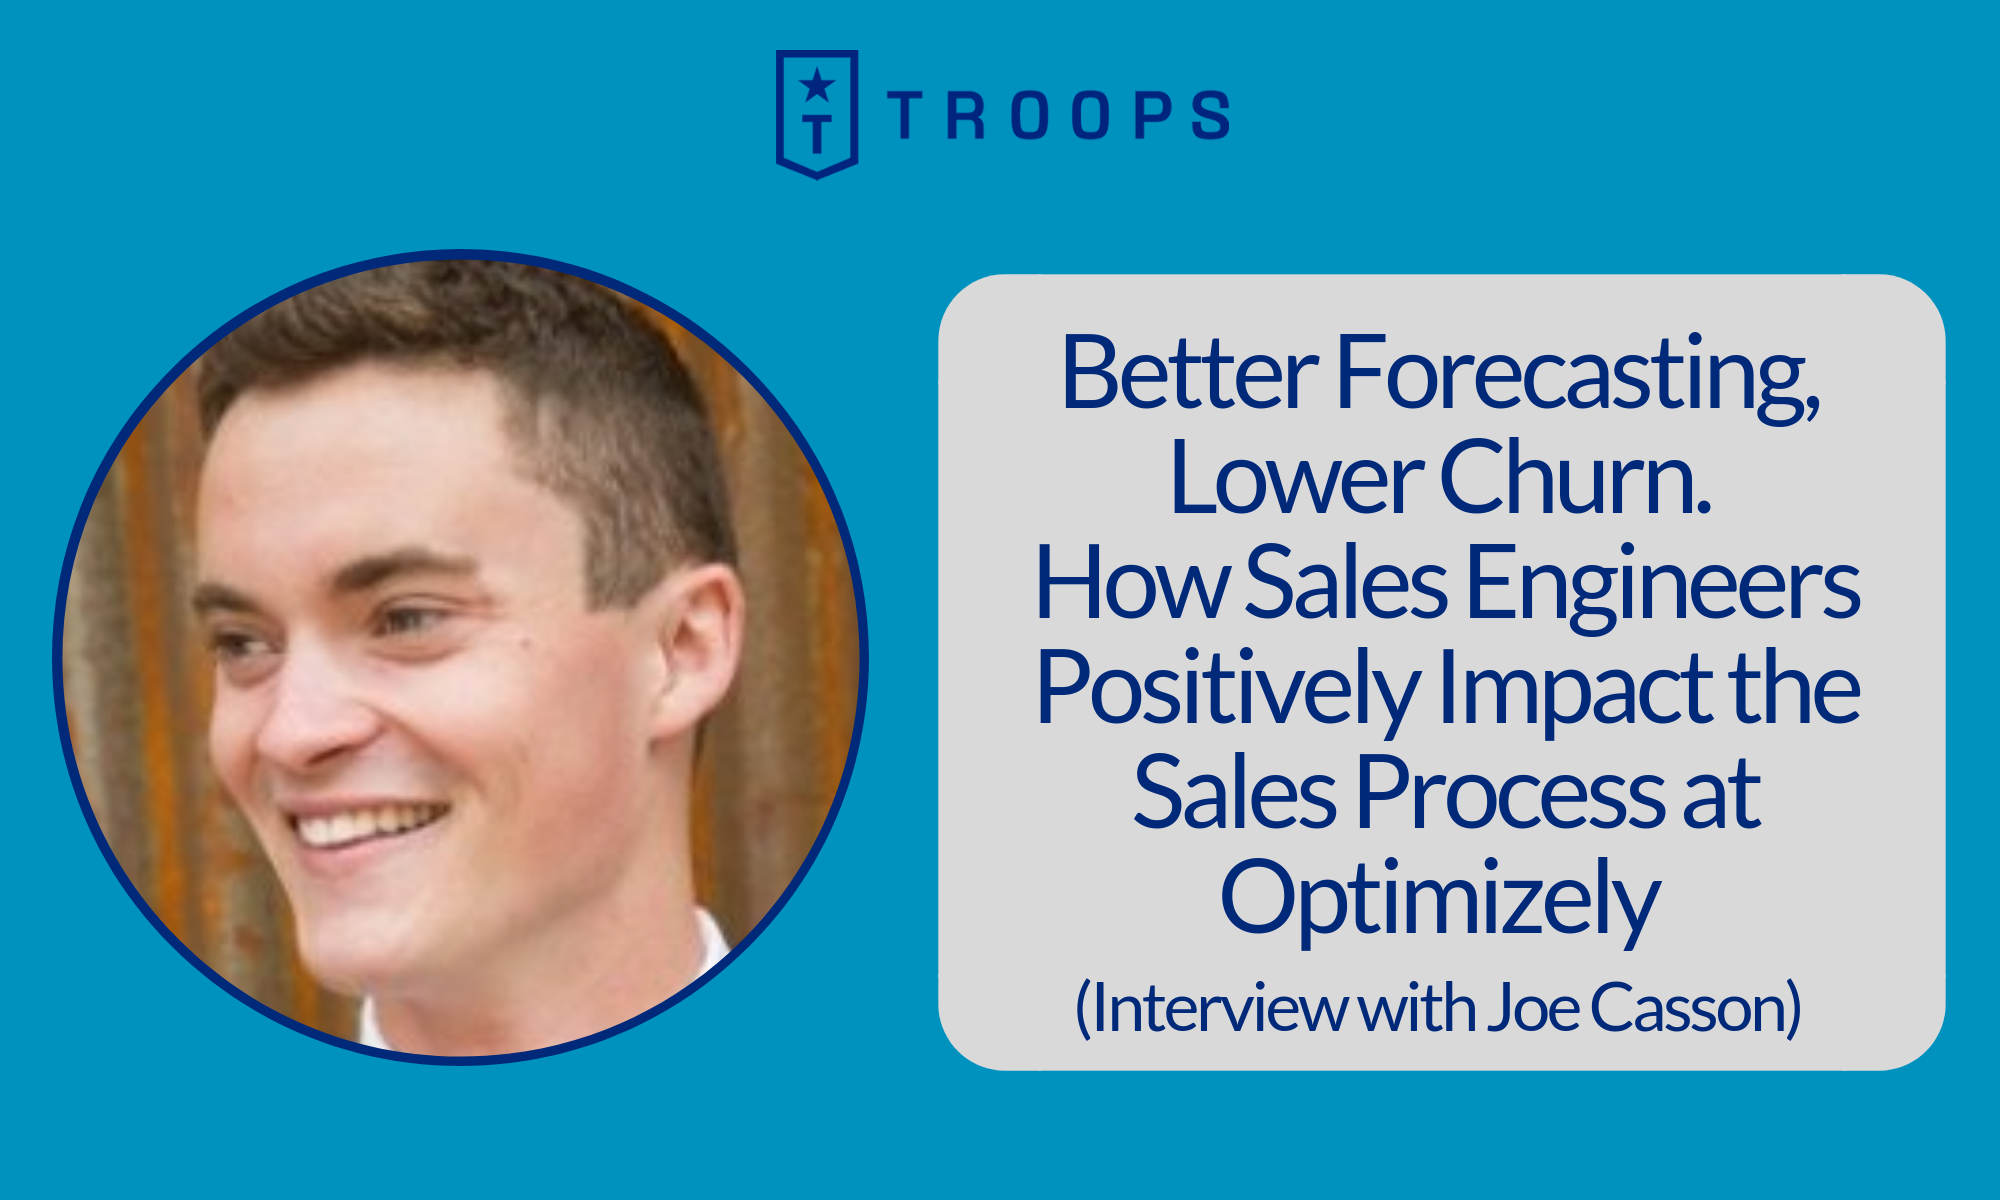 Better Forecasting, Lower Churn. How Sales Engineers Positively Impact the Sales Process at Optimizely